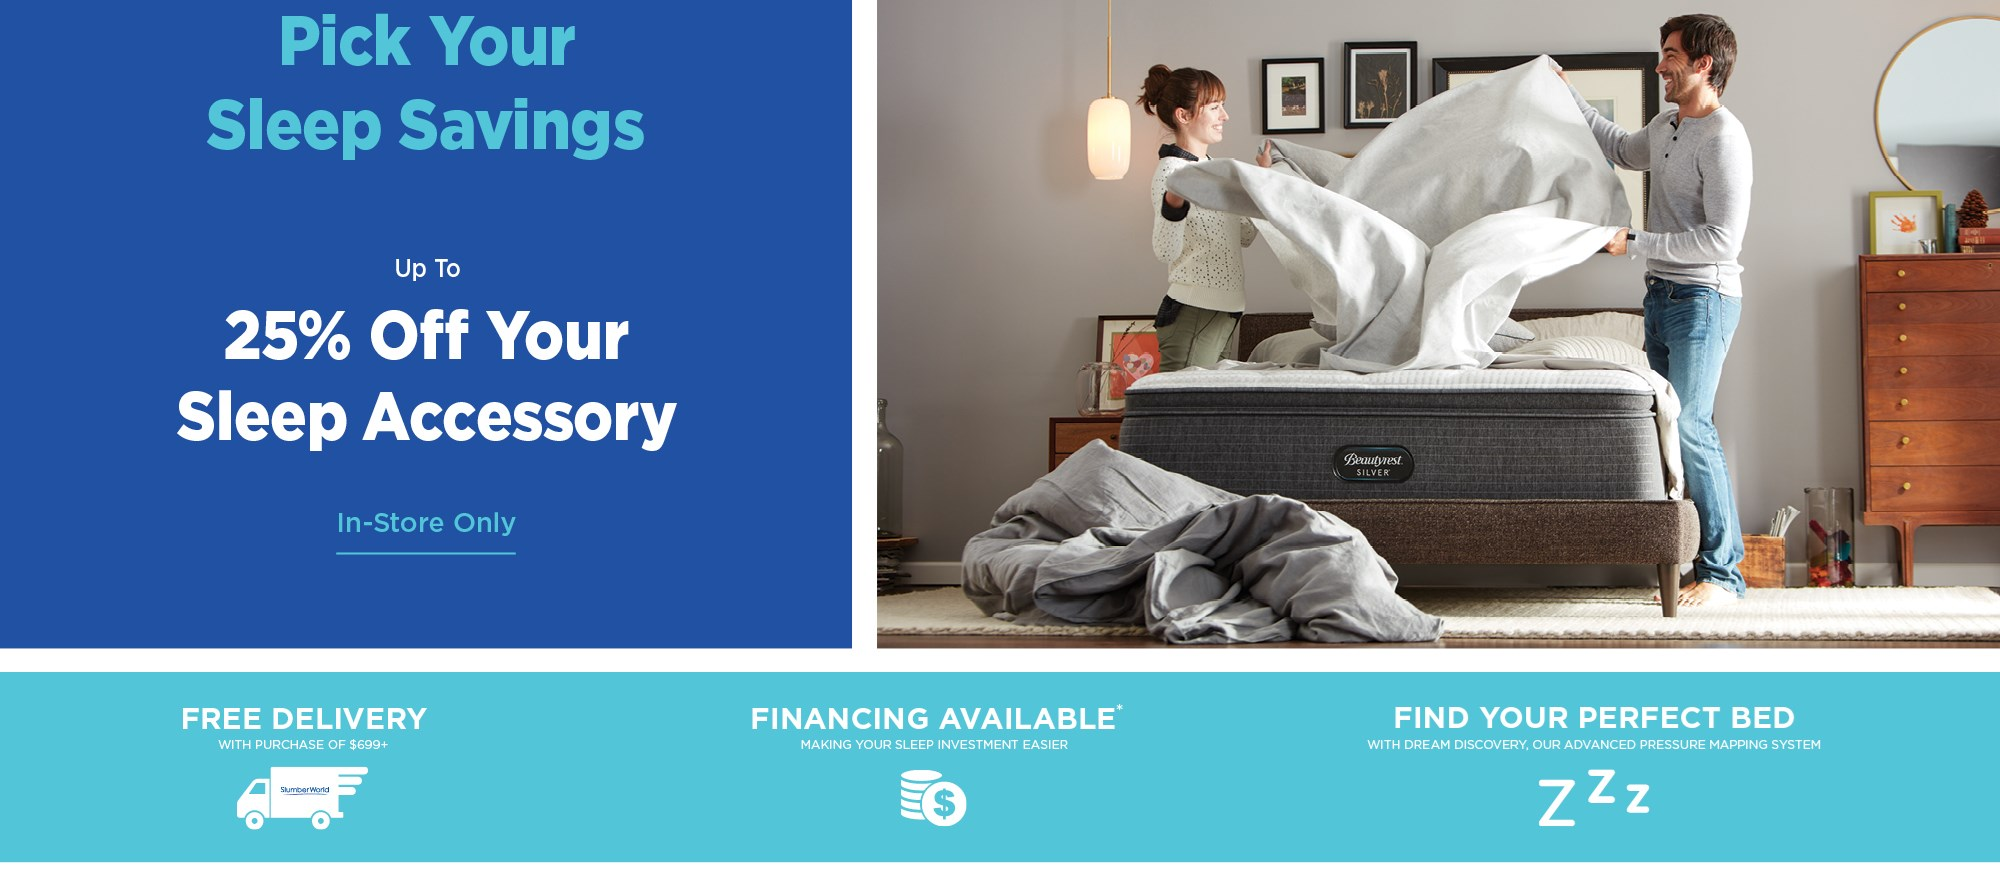 Up to 25% off your sleep accessory; financing available. See store for details.